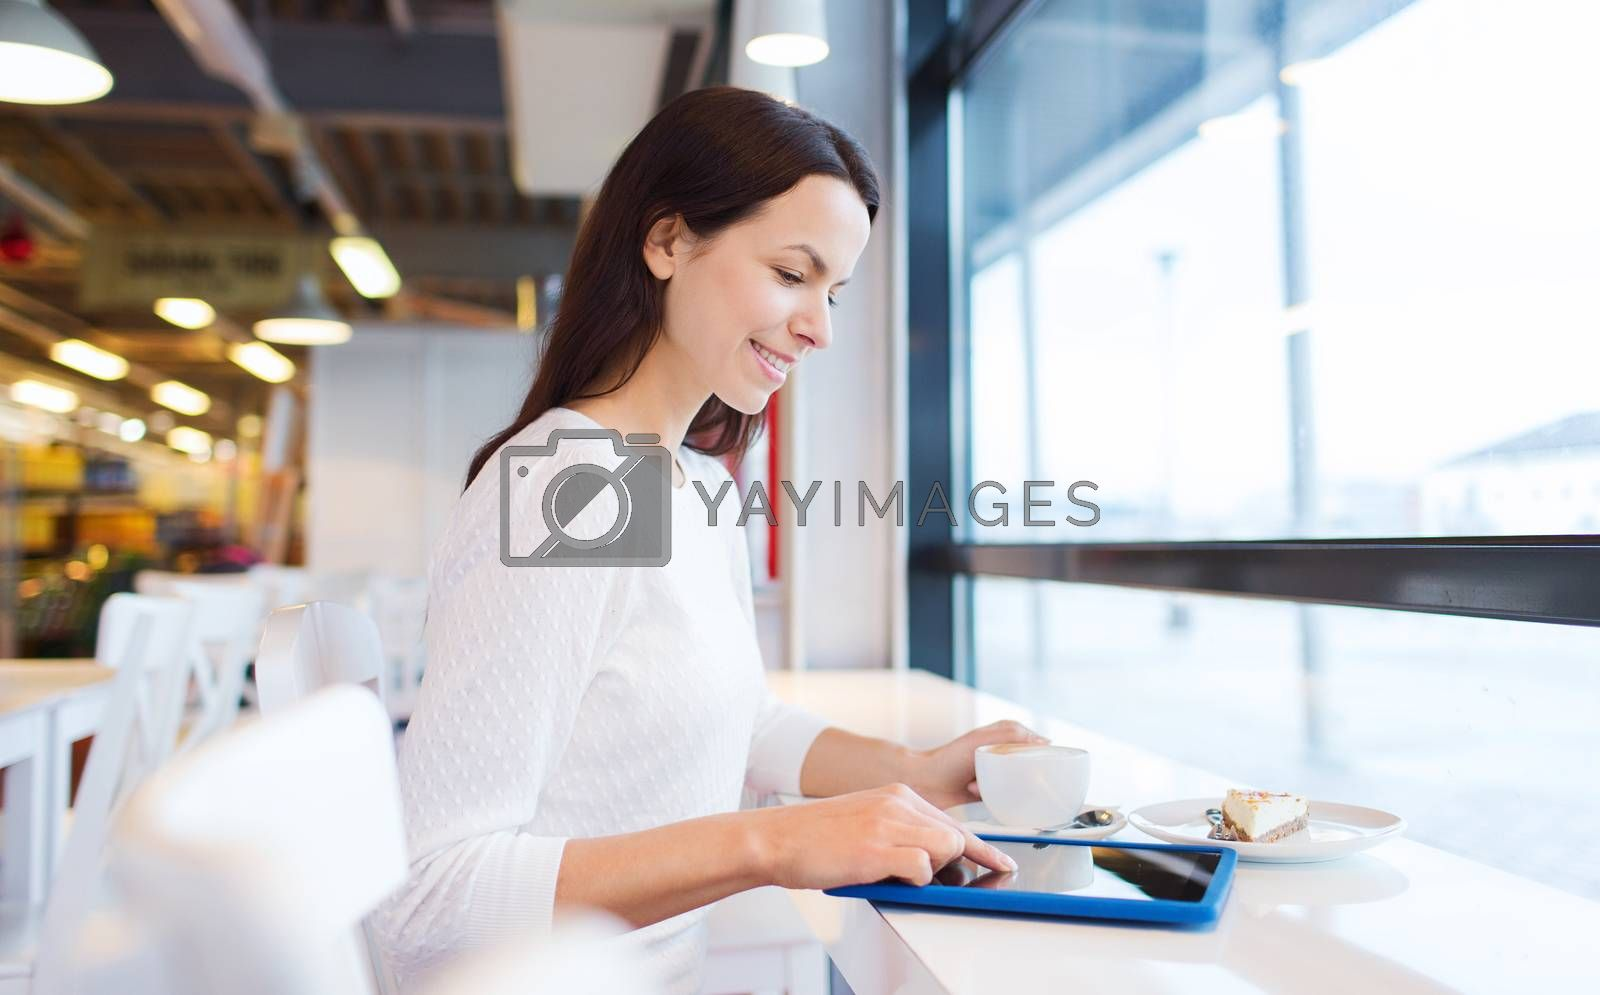 leisure, drinks, people, technology and lifestyle concept - smiling young woman with tablet pc computer drinking coffee at cafe